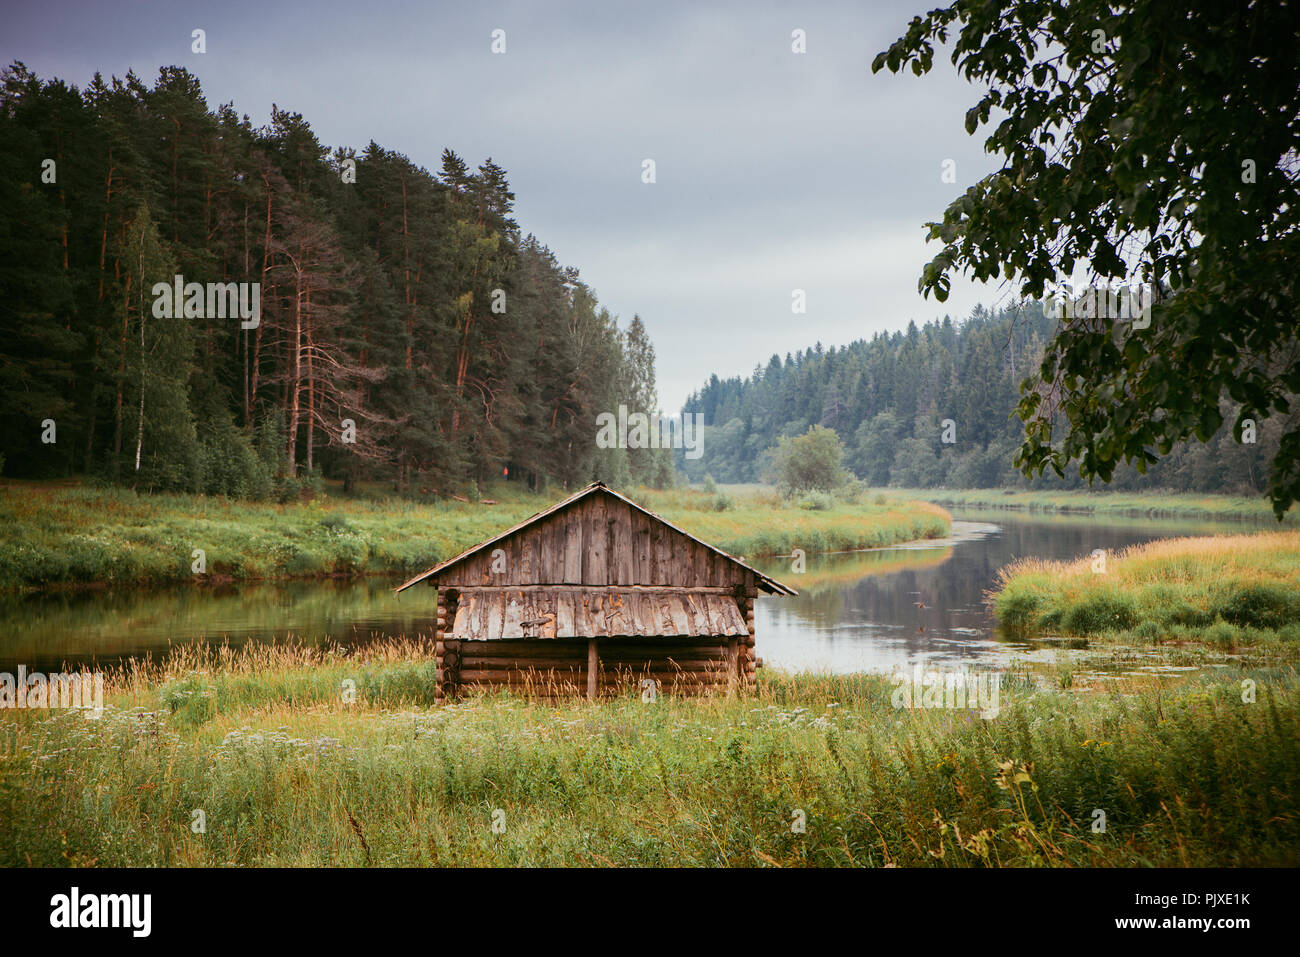 A log cabin on the river bank among the pines, in autumn Stock Photo